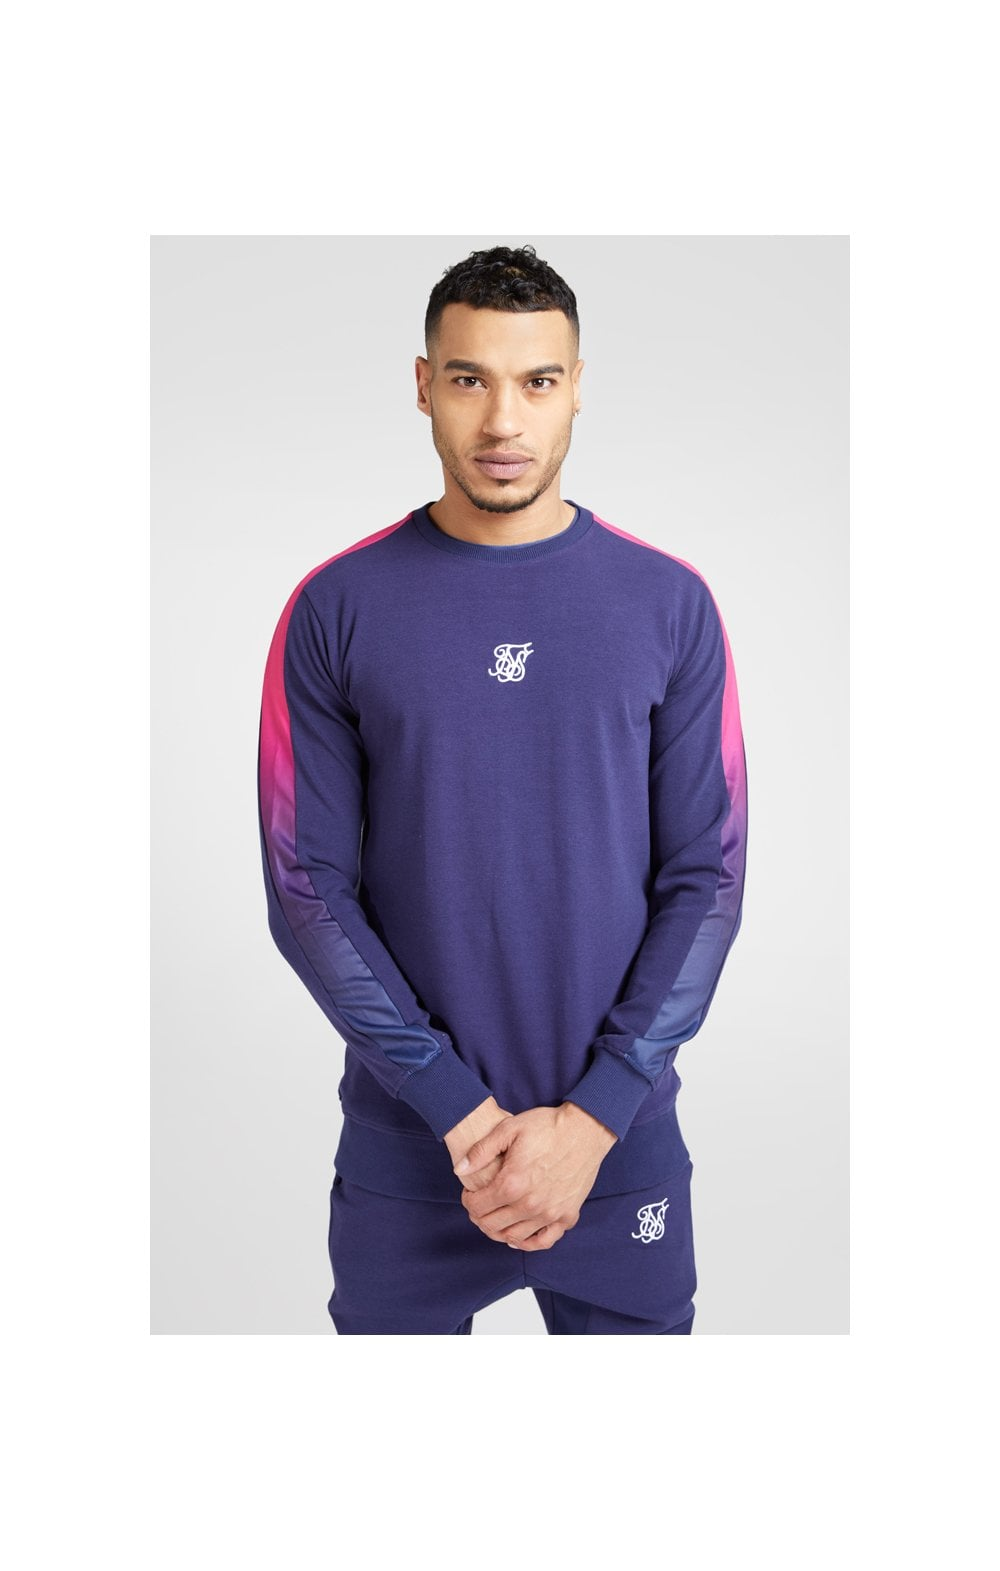 SikSilk Fade Panel Crew Sweat – Navy & Neon Fade (5)